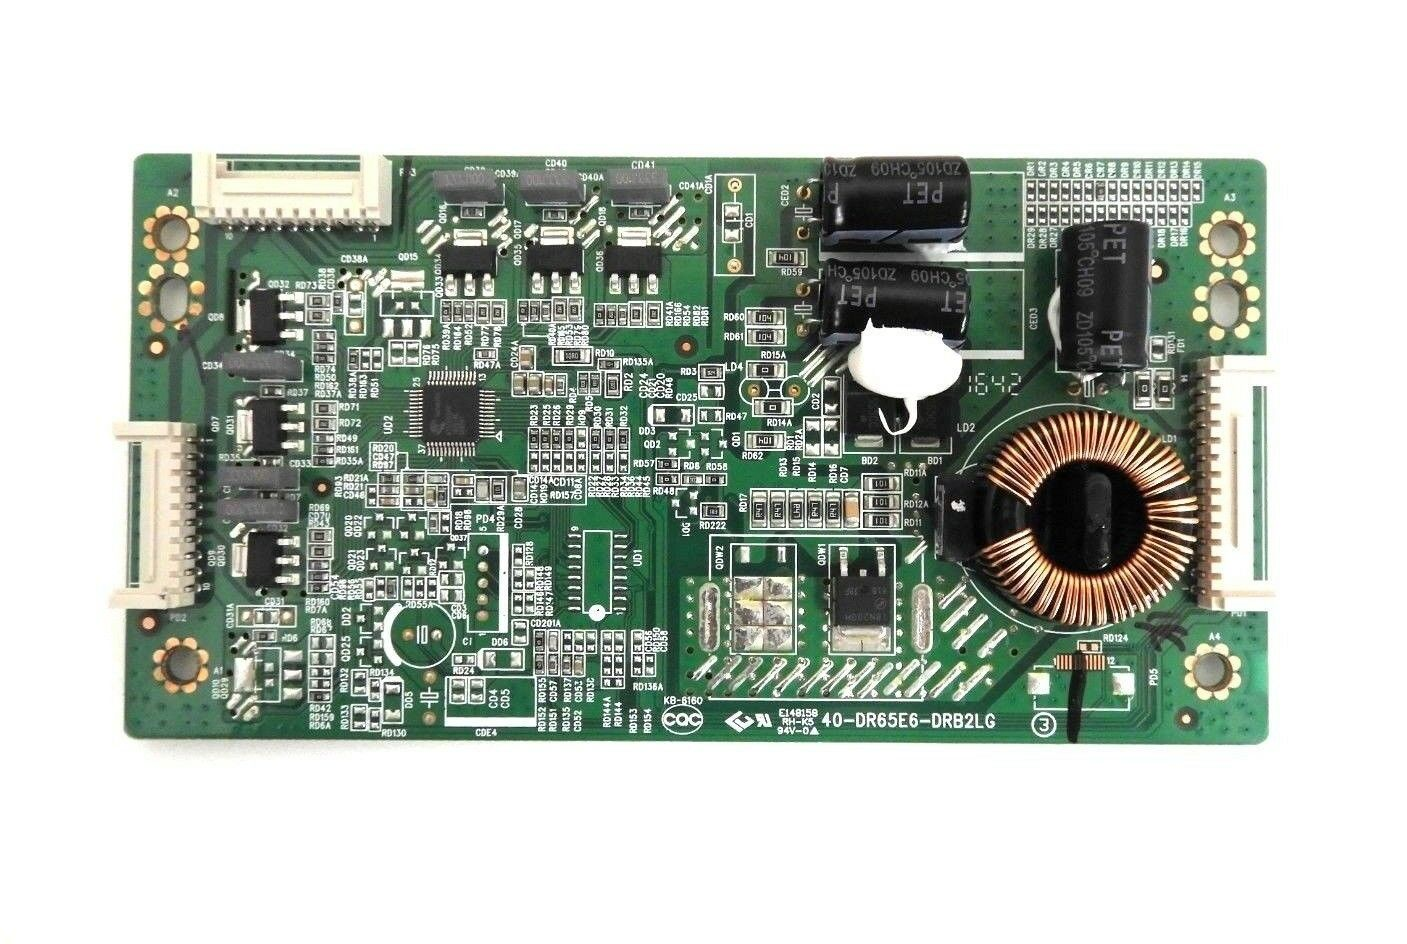 tcl 65us5800 led driver board 40 dr65e6 drb2lg (65\